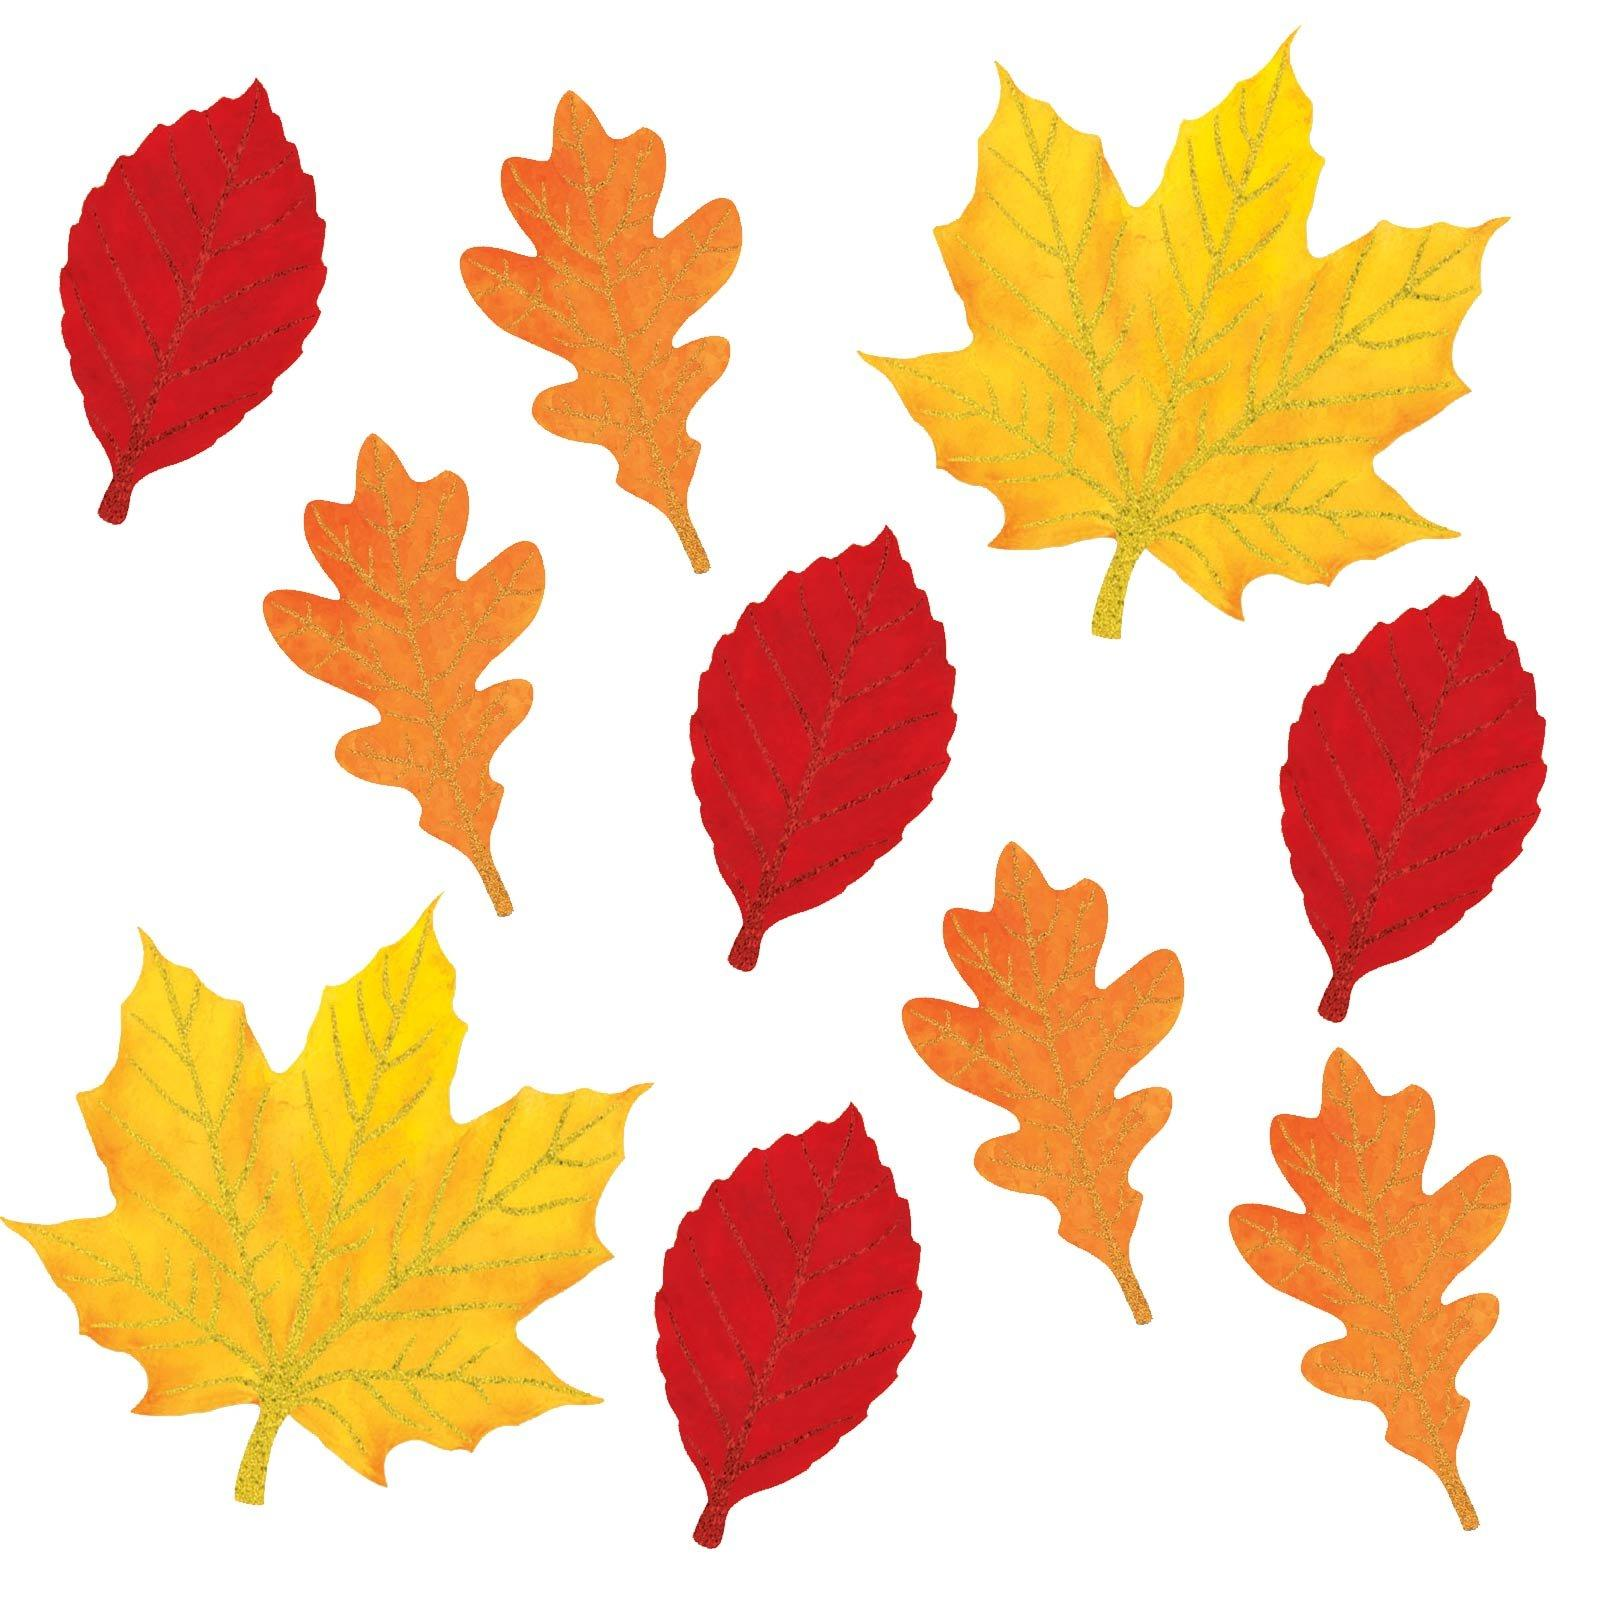 This is a graphic of Handy Fall Leaf Printable